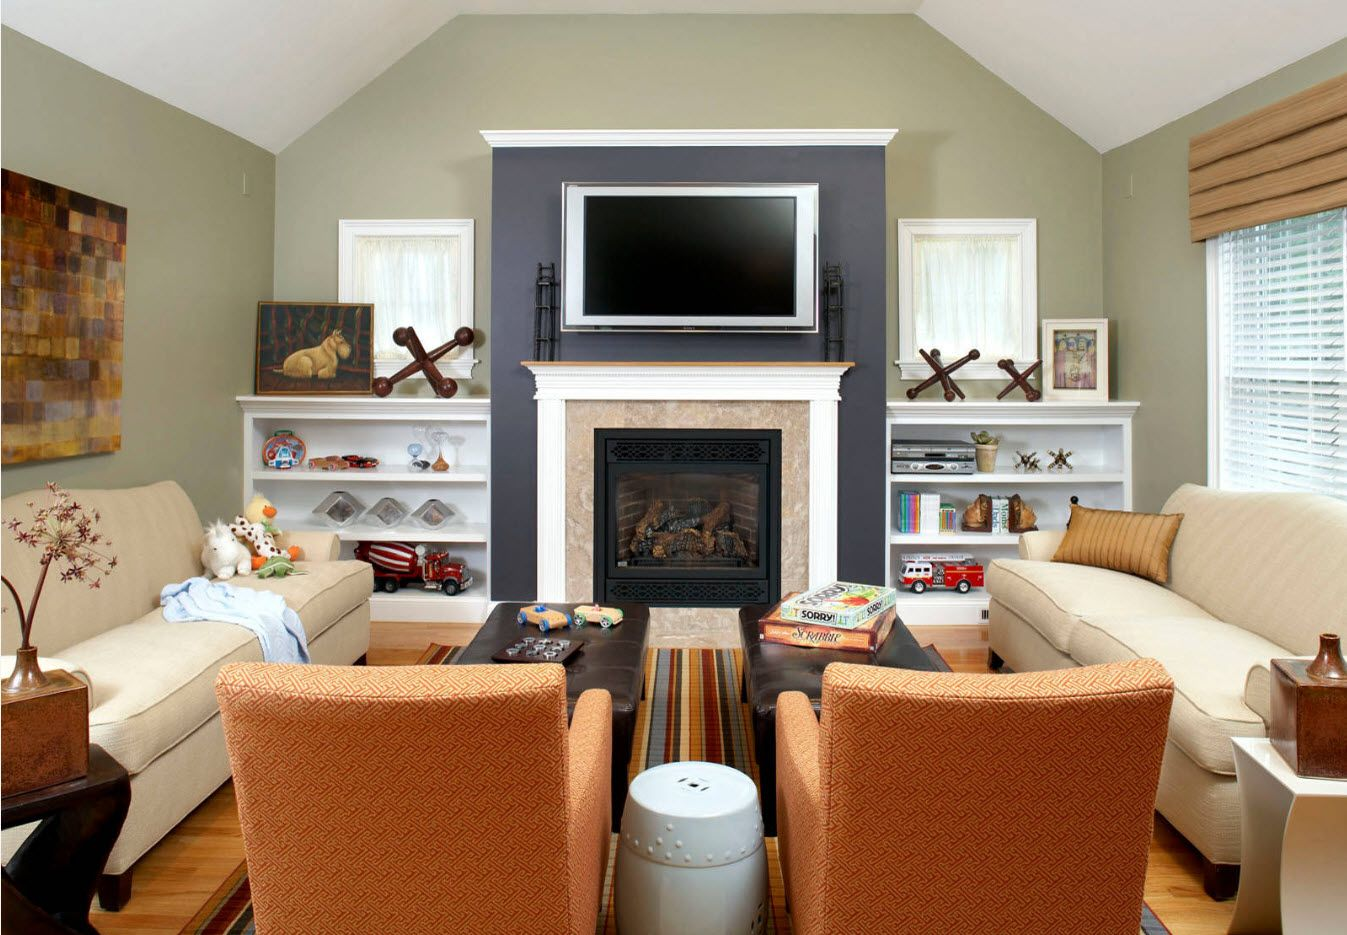 Artificial fireplace with accentual mantelshelf and TV-set